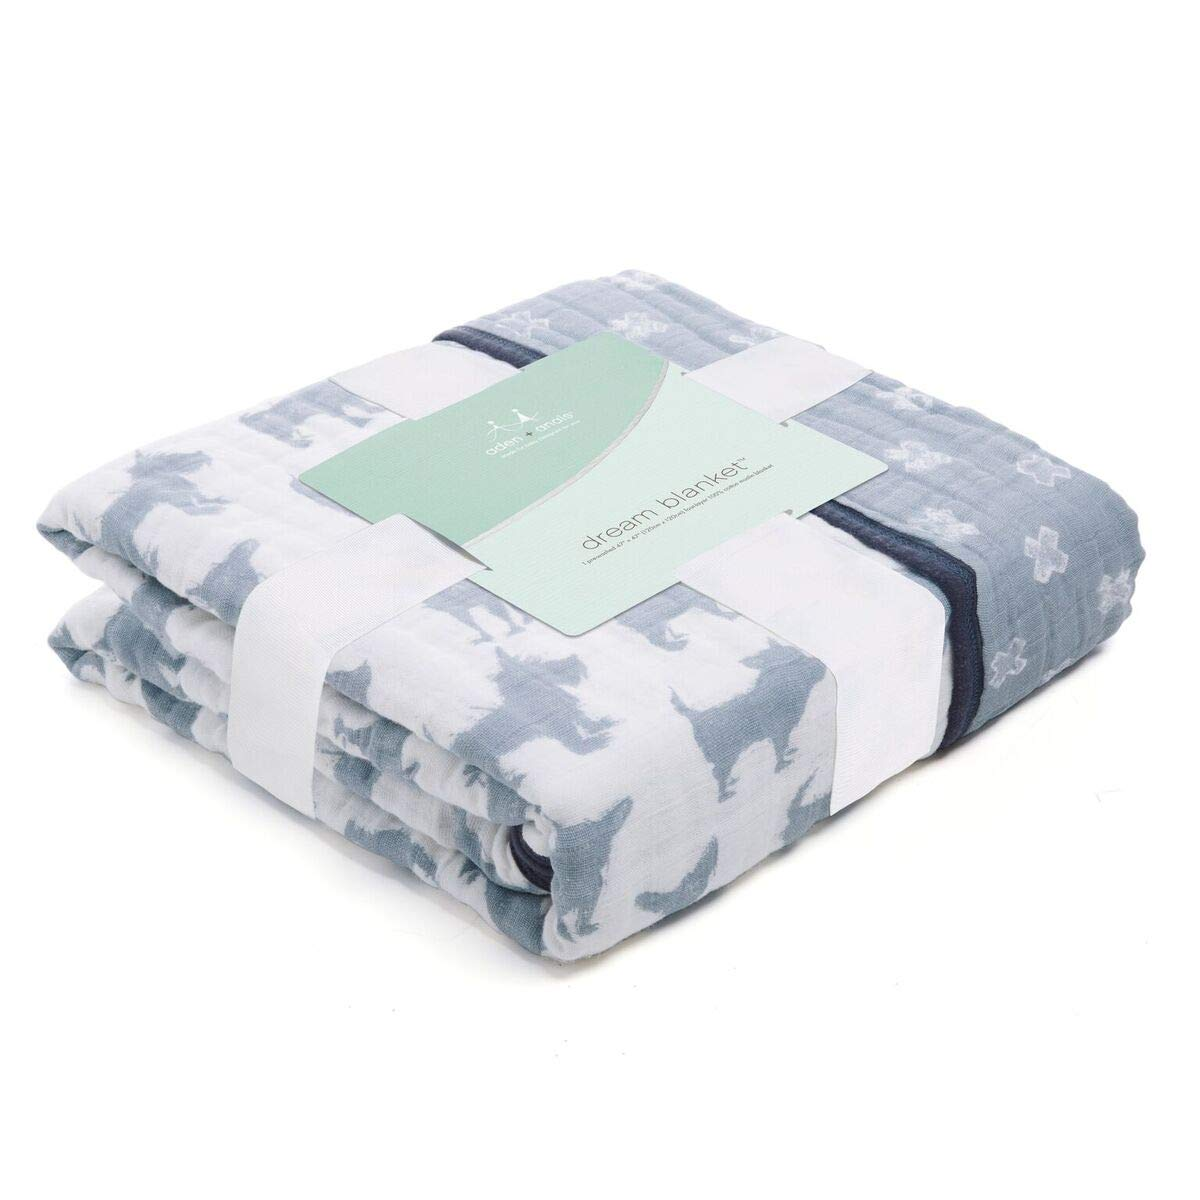 aden + anais Dream Blanket; 100% Cotton Muslin; 4 Layer Lightweight and Breathable; Large 47 X 47 inch; Waverly - Pup by aden + anais (Image #2)